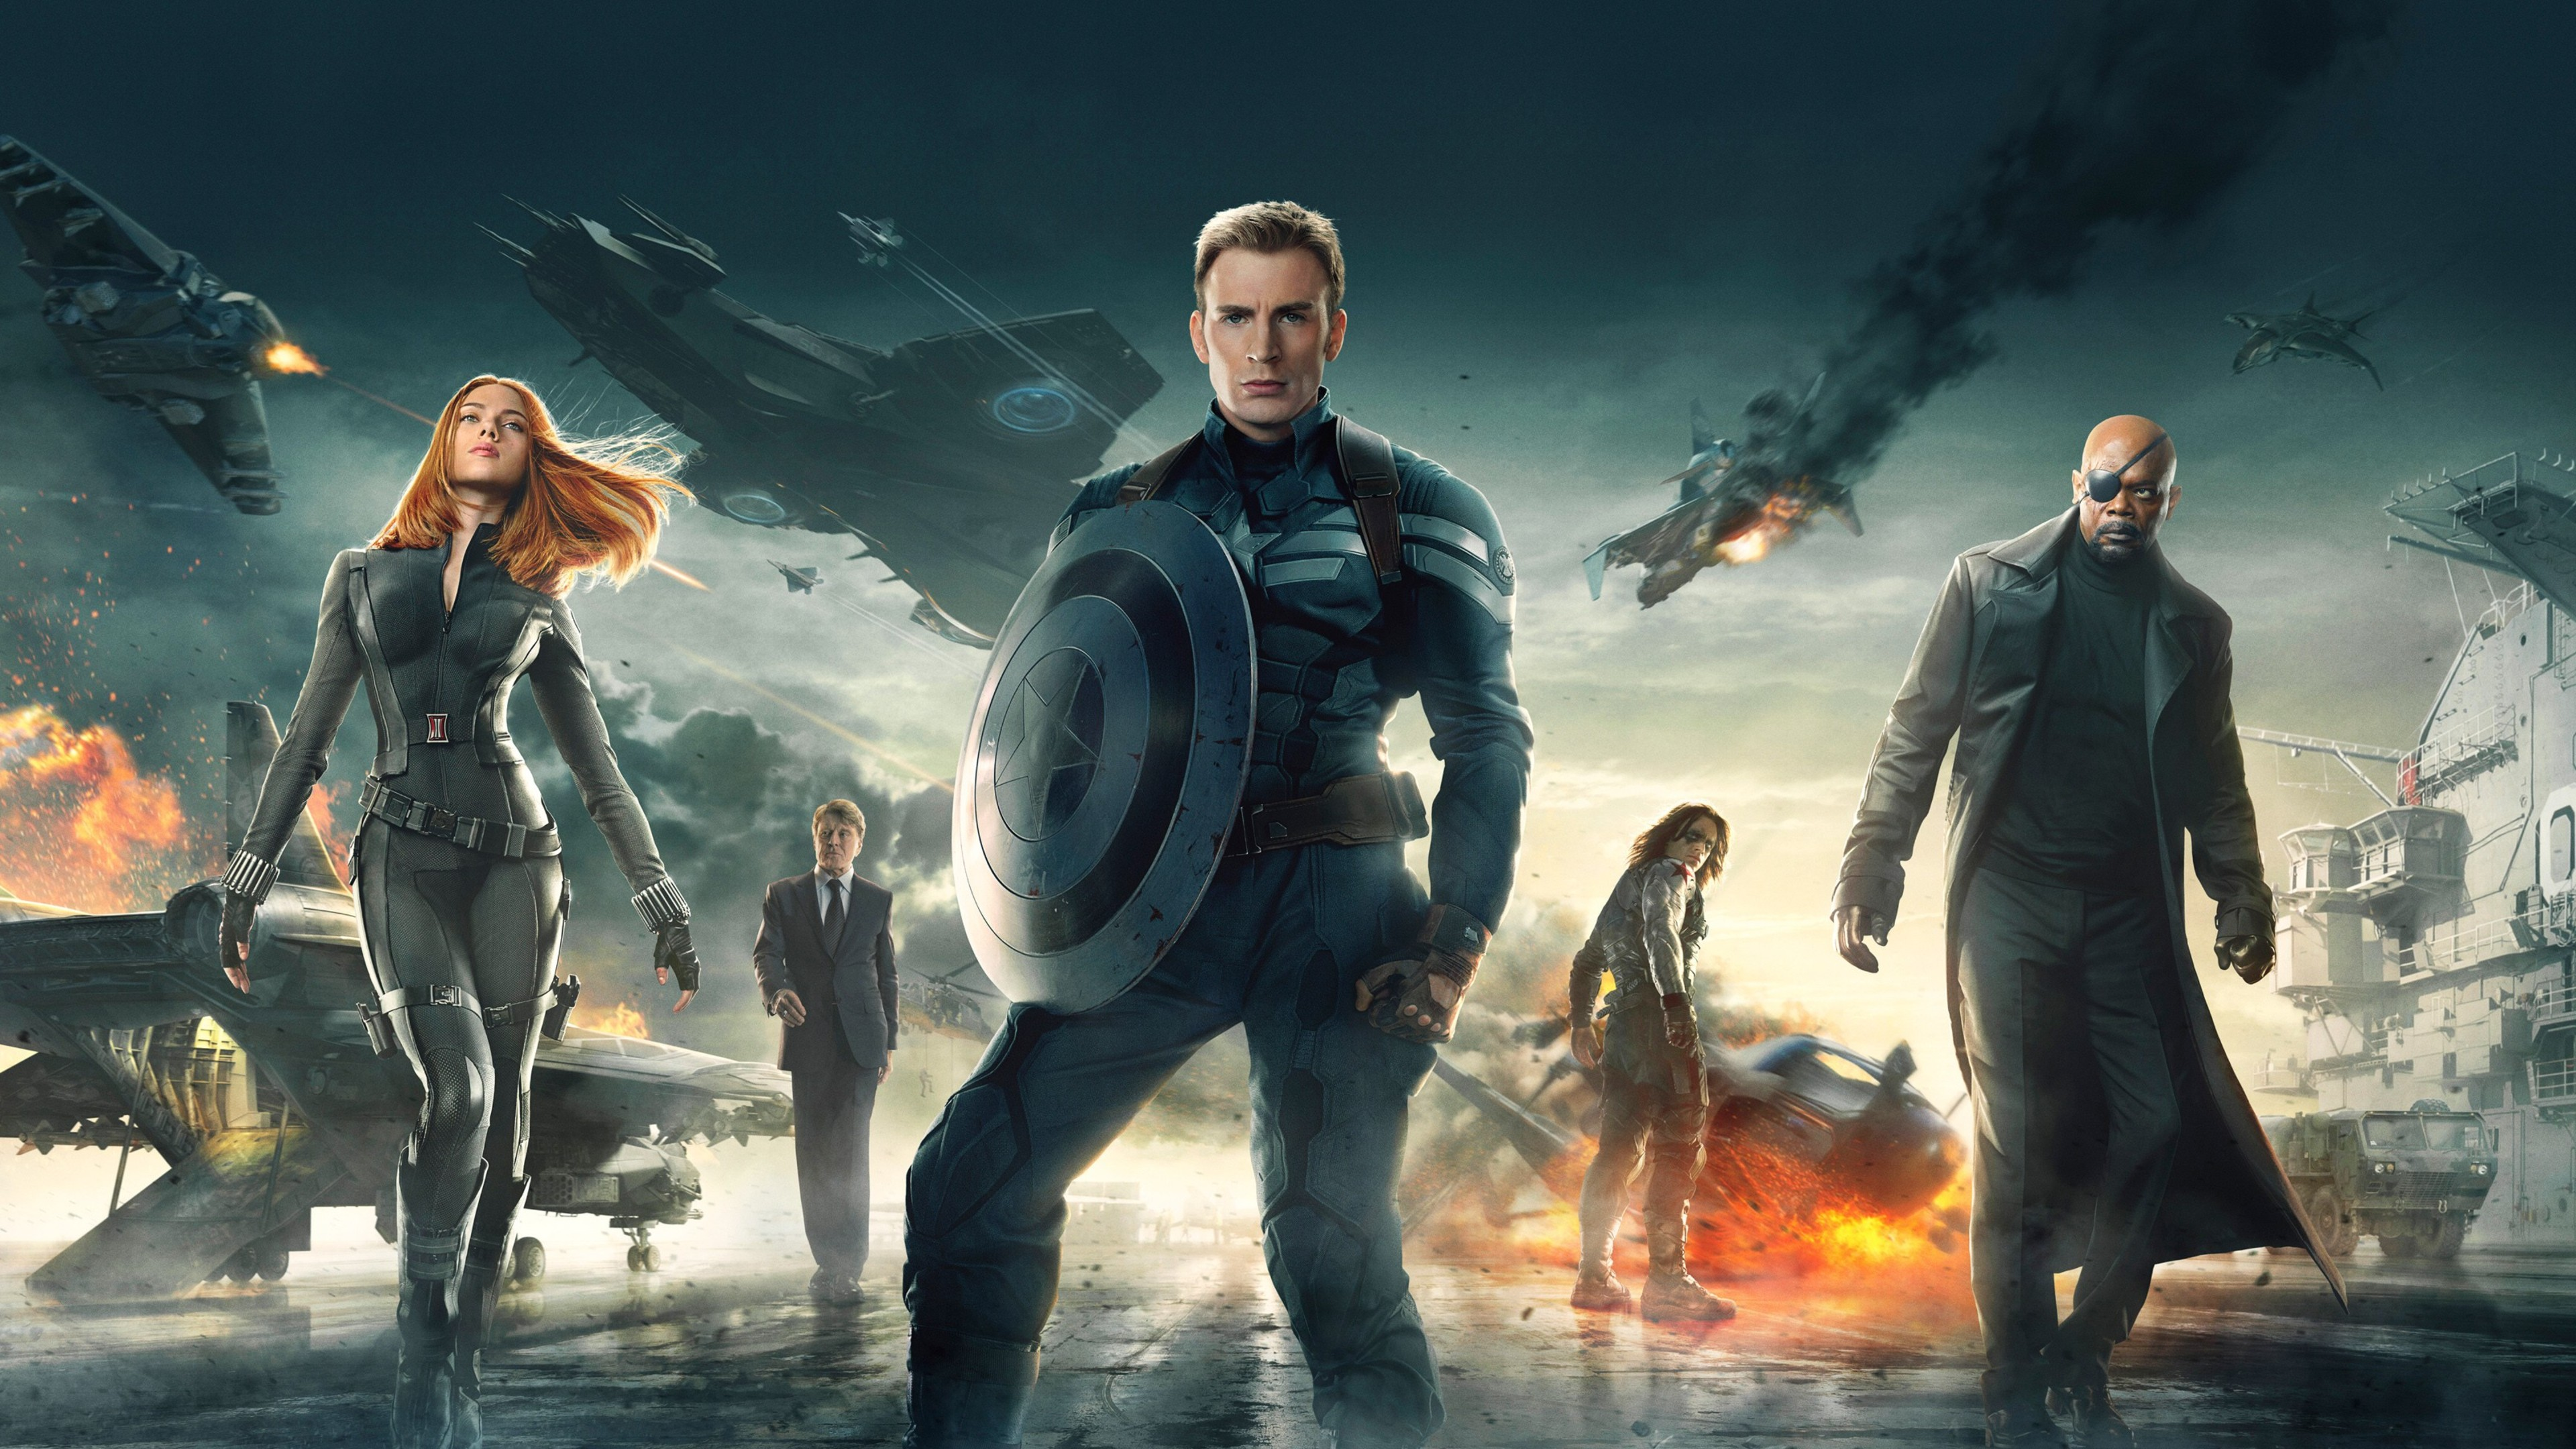 Captain america the winter soldier hd movies 4k for American cuisine movie download